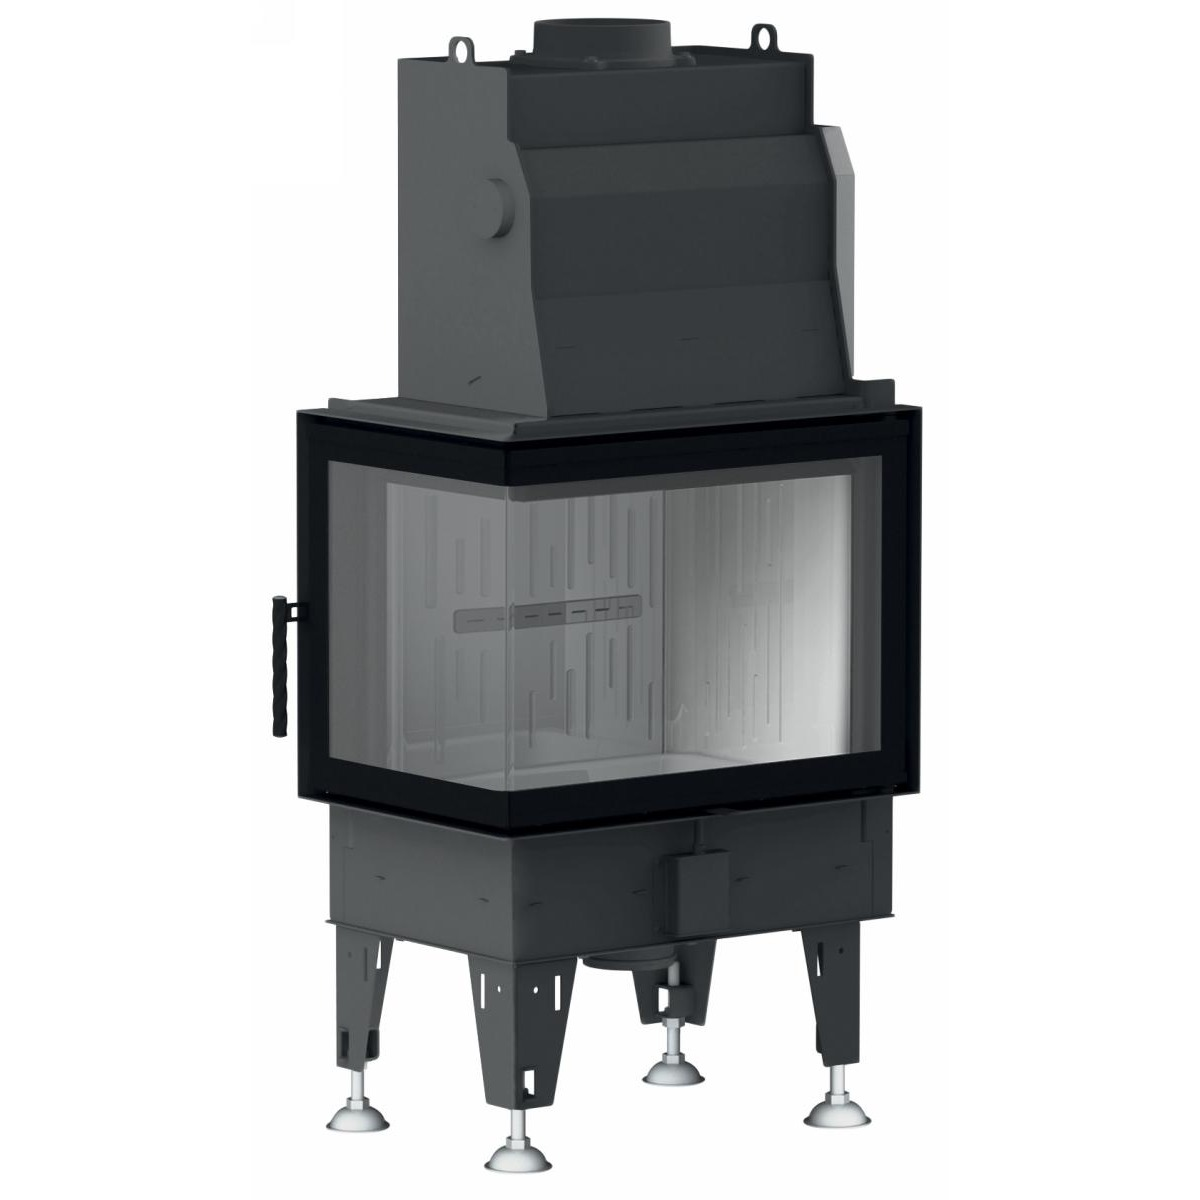 Aquatic WH80 CL fireplace insert Boiler